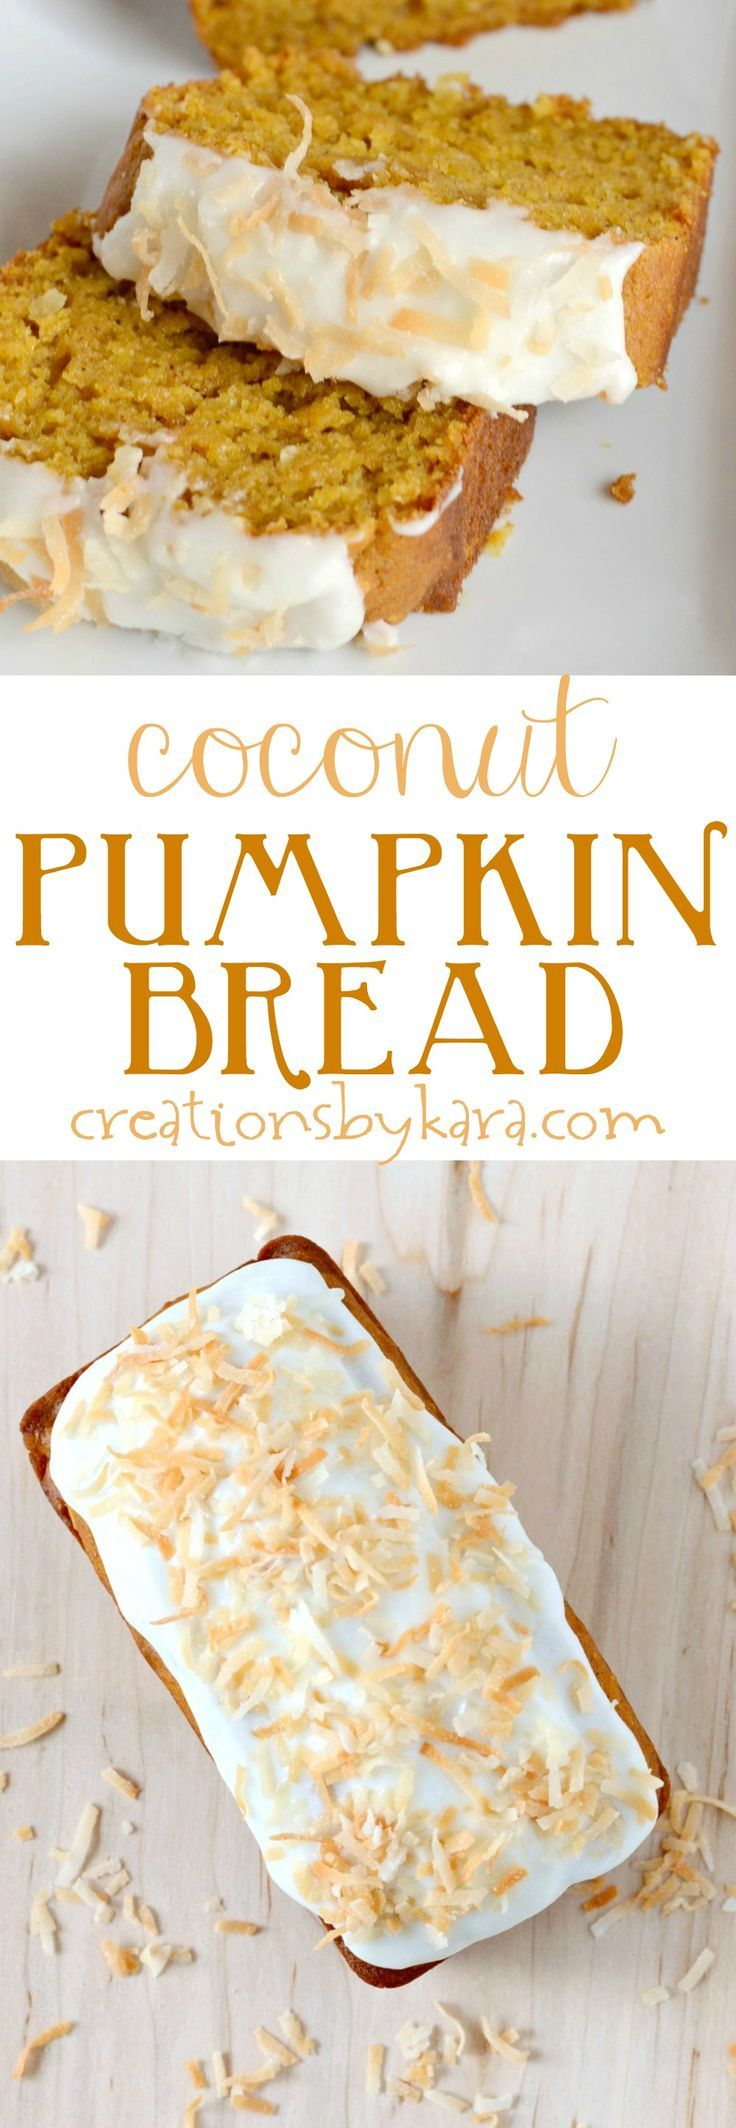 Food faith amp design thanksgiving goodies - Pudding In The Batter Makes This Coconut Pumpkin Bread Extra Moist And Delicious Top It With Cream Cheese Frosting For An Extra Special Treat